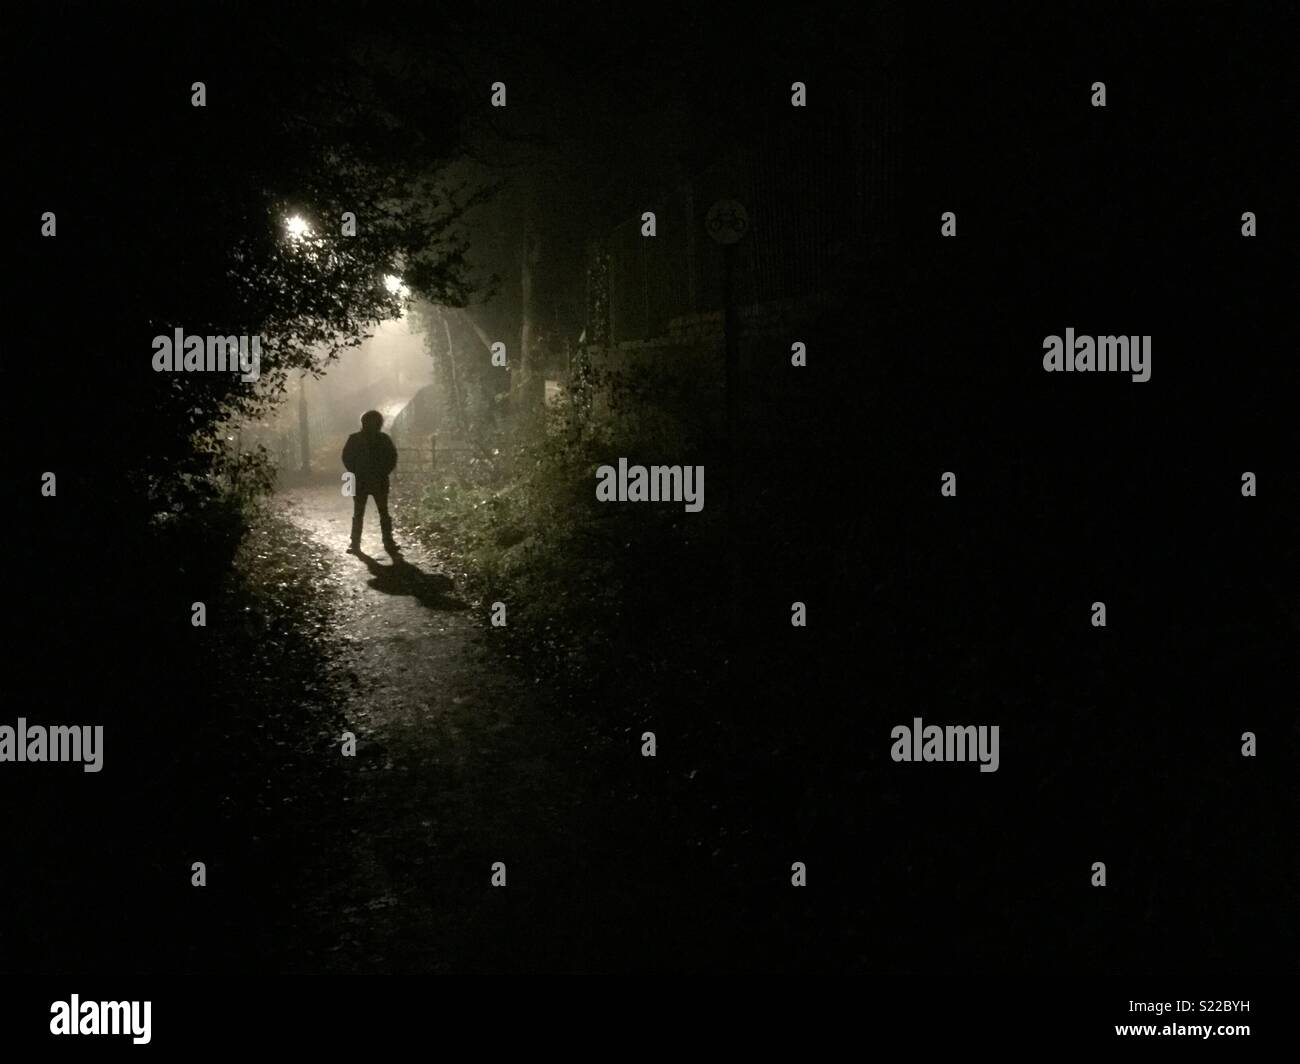 Stranger silhouetted at night. - Stock Image